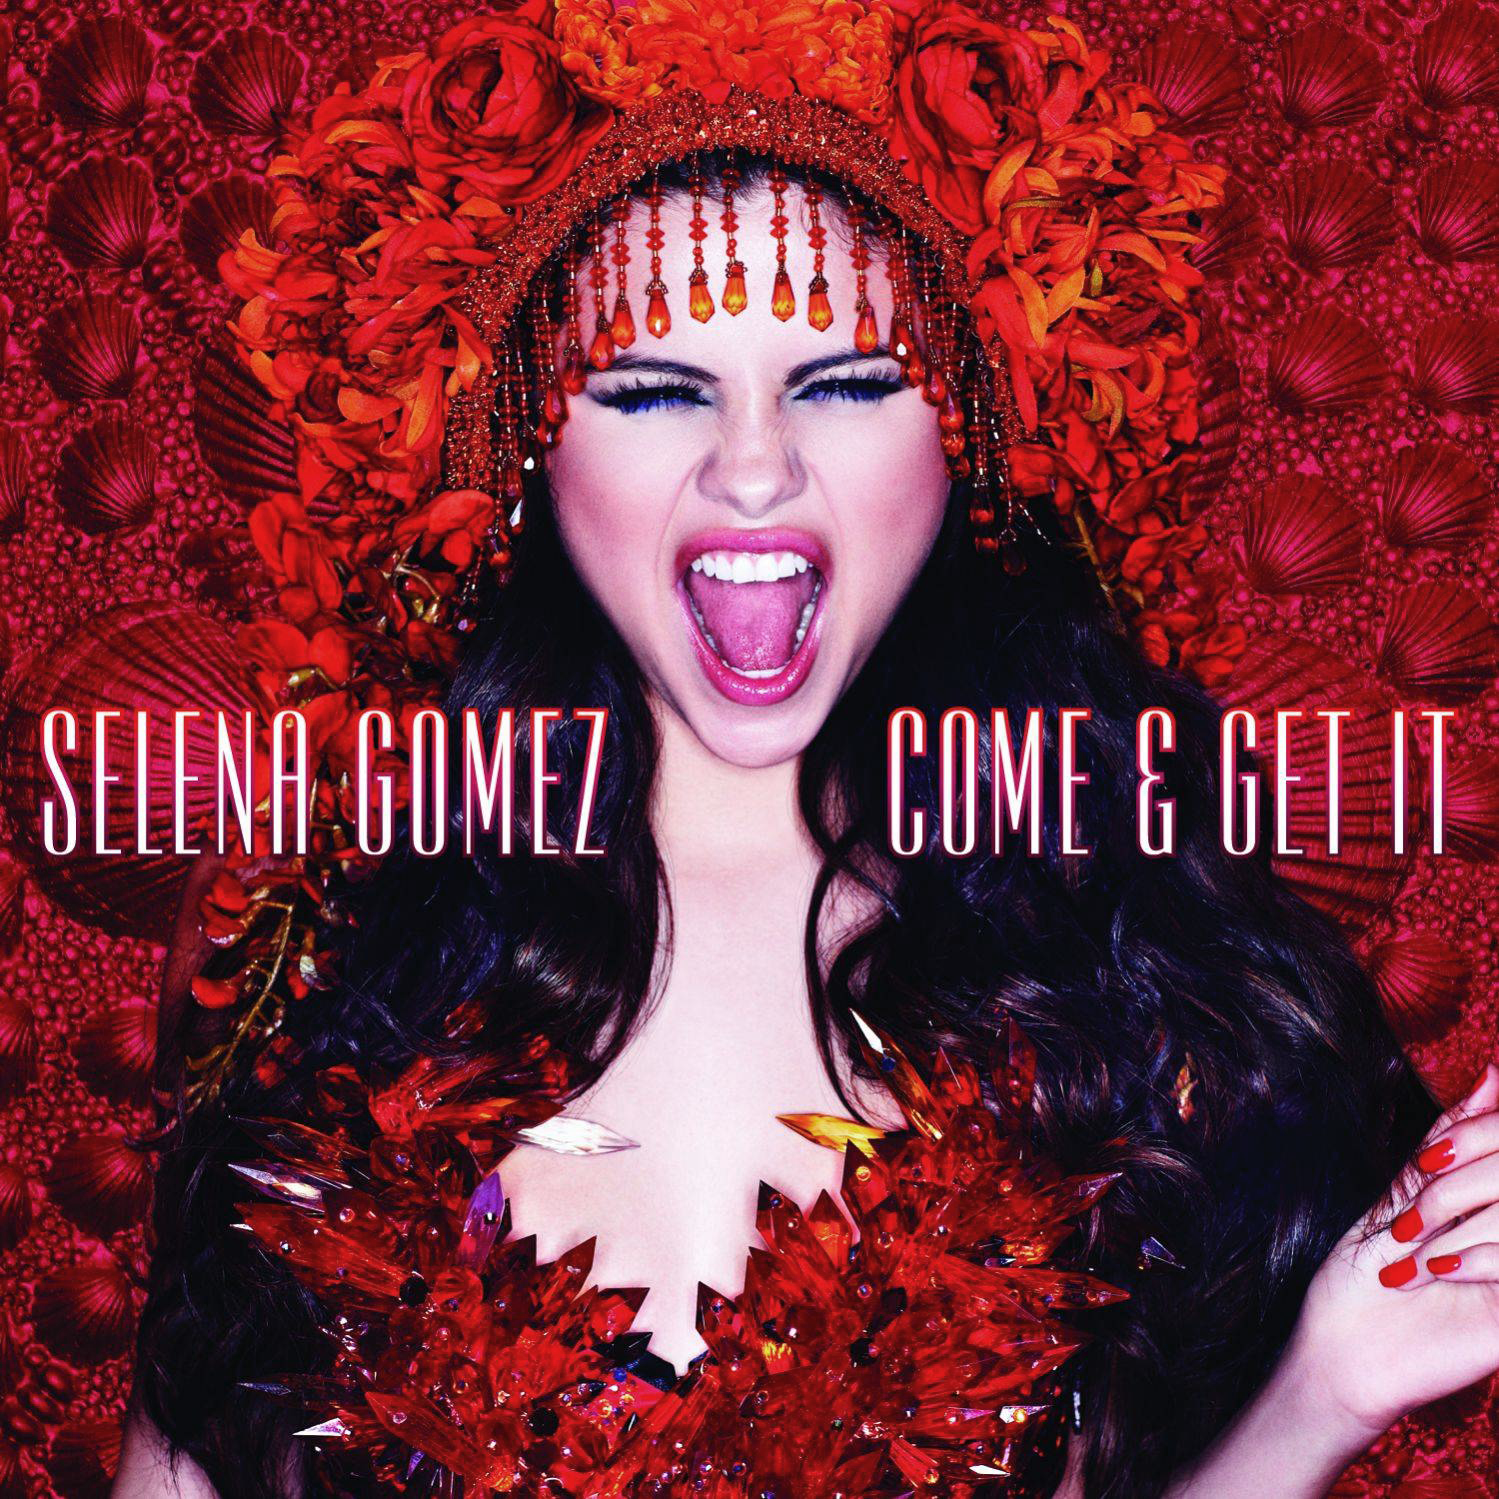 Selena-Gomez-Come-Get-It-2013-1500x1500